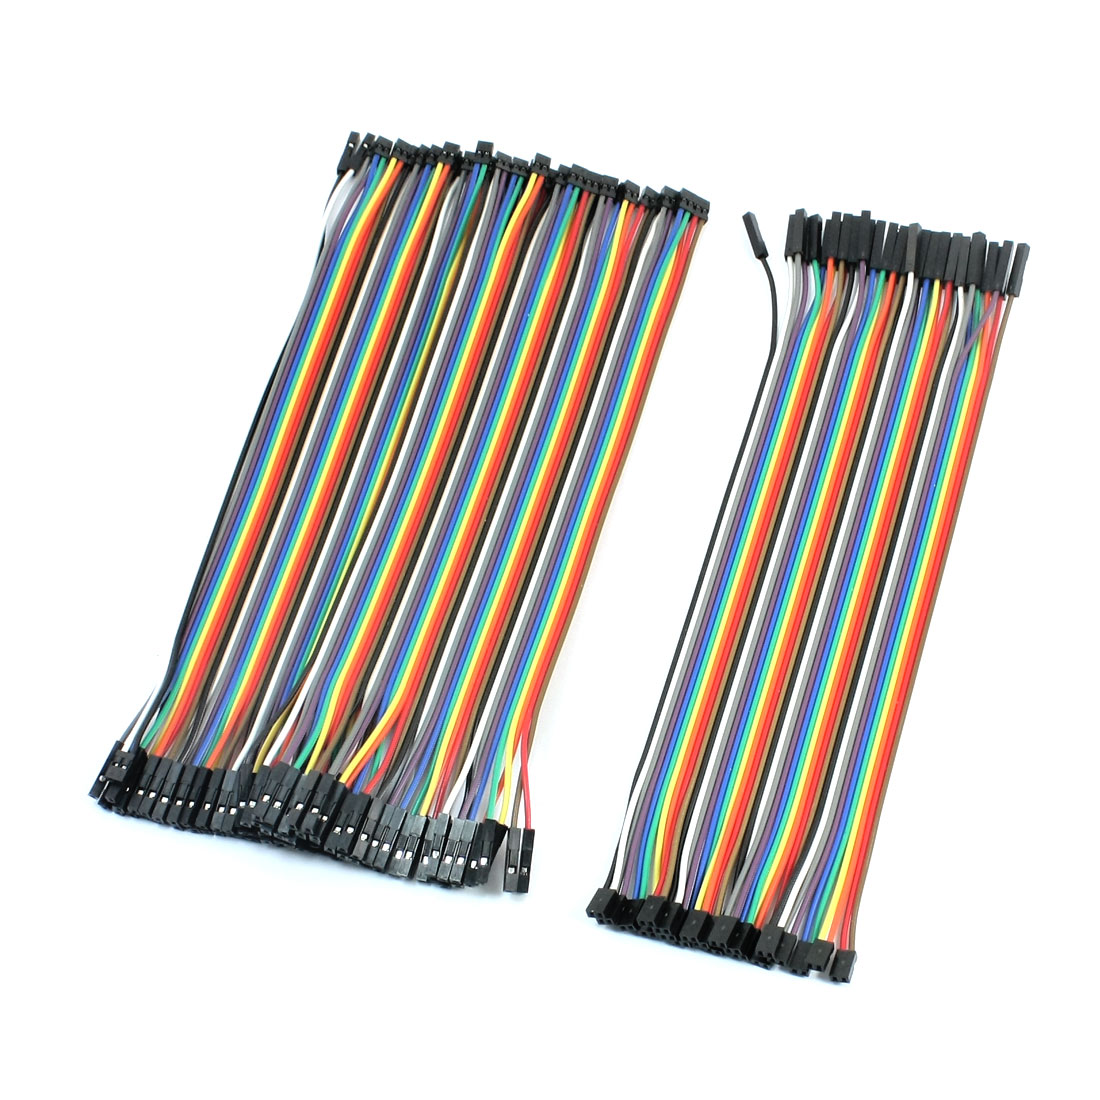 60pcs Multicolor Jumper Wire Line 2.0mm to 2.54mm Female Connector 20cm